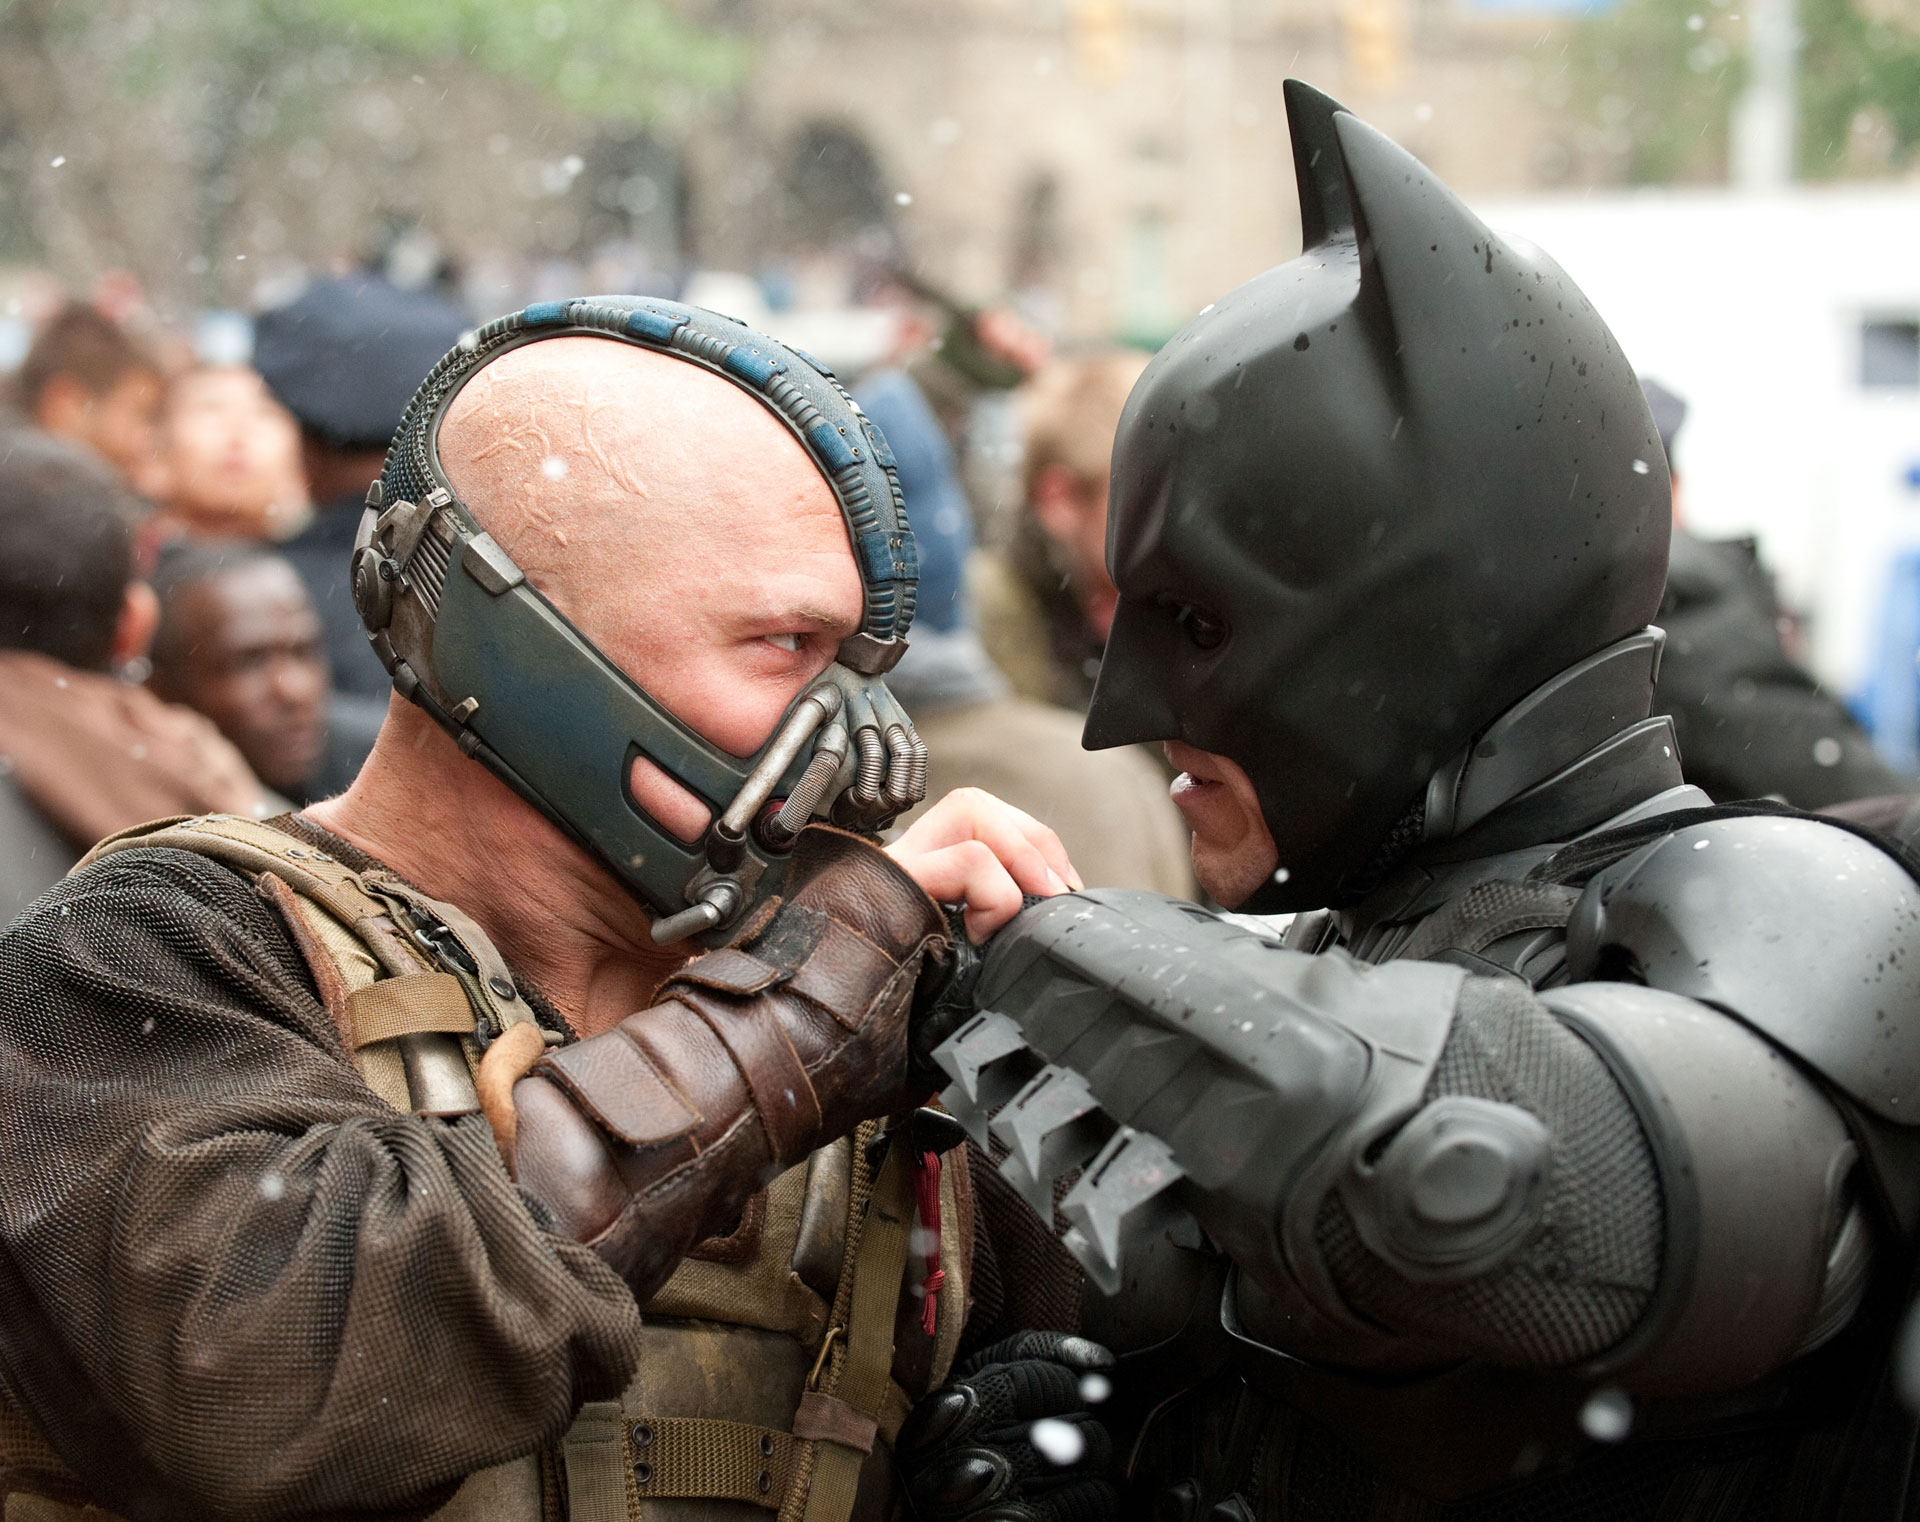 The Dark Knight Rises High-Res Photos Ready for Viewing